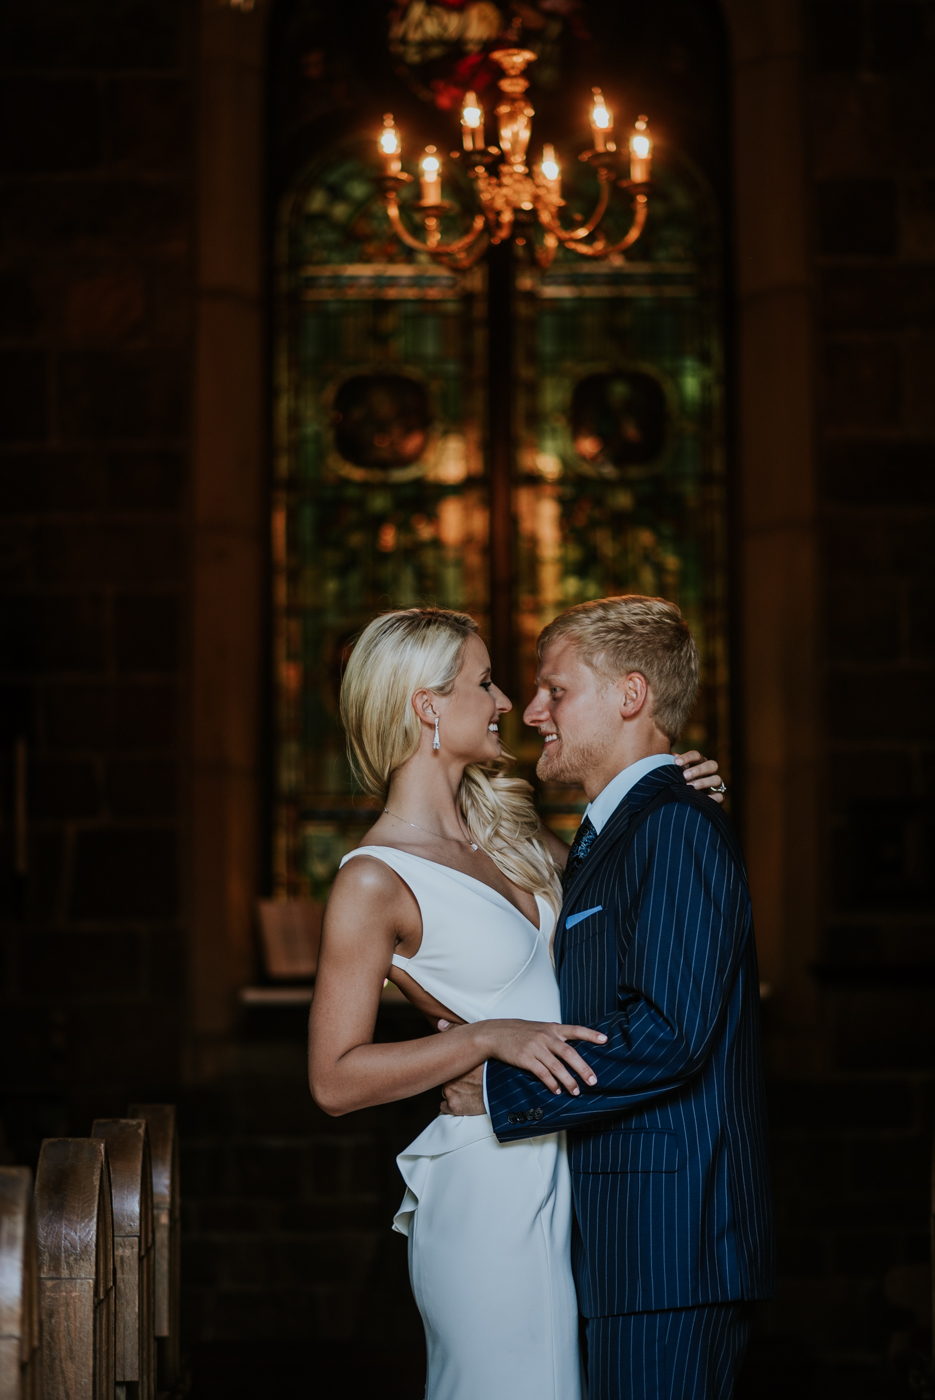 Sierra+Jacob.Wedding.Blog©mileswittboyer.com2018-99.jpg